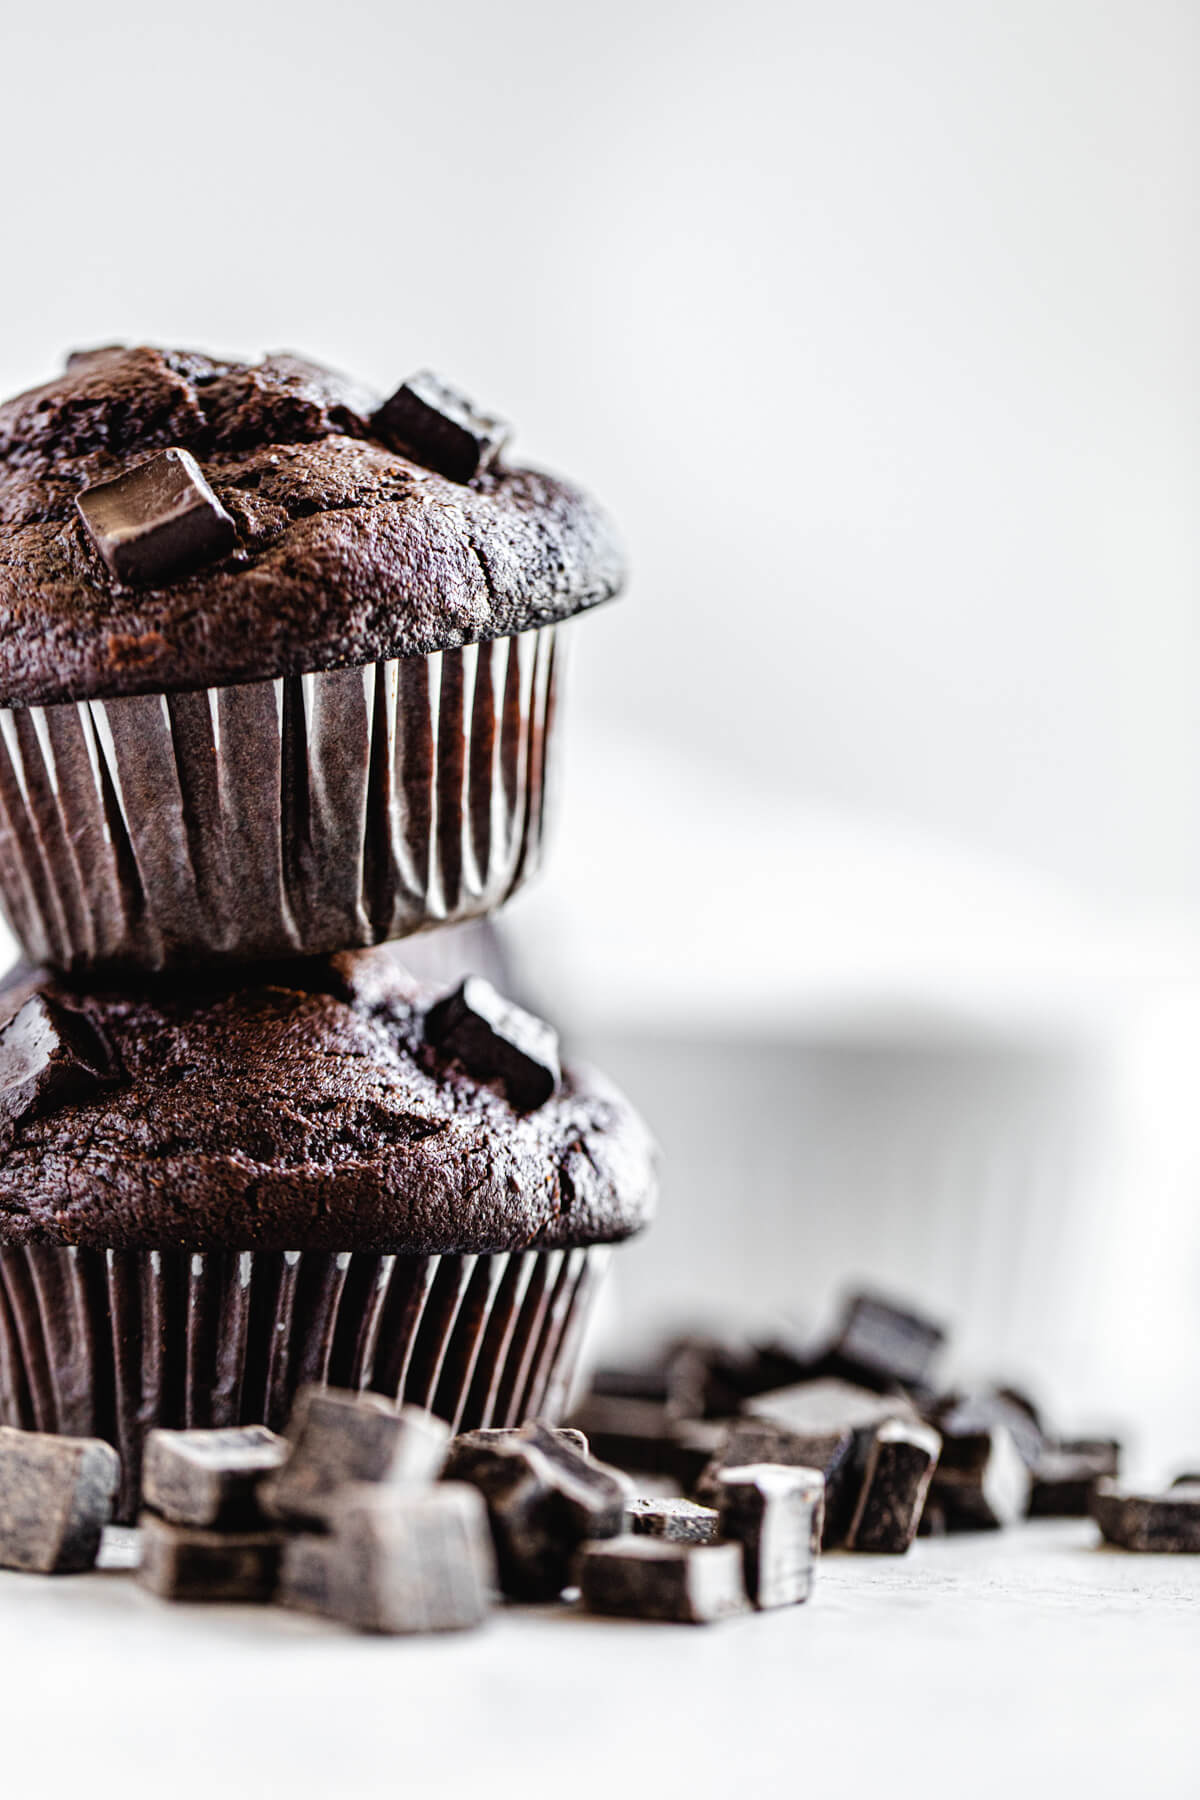 two muffins stacked with chocolate chunks surrounding them